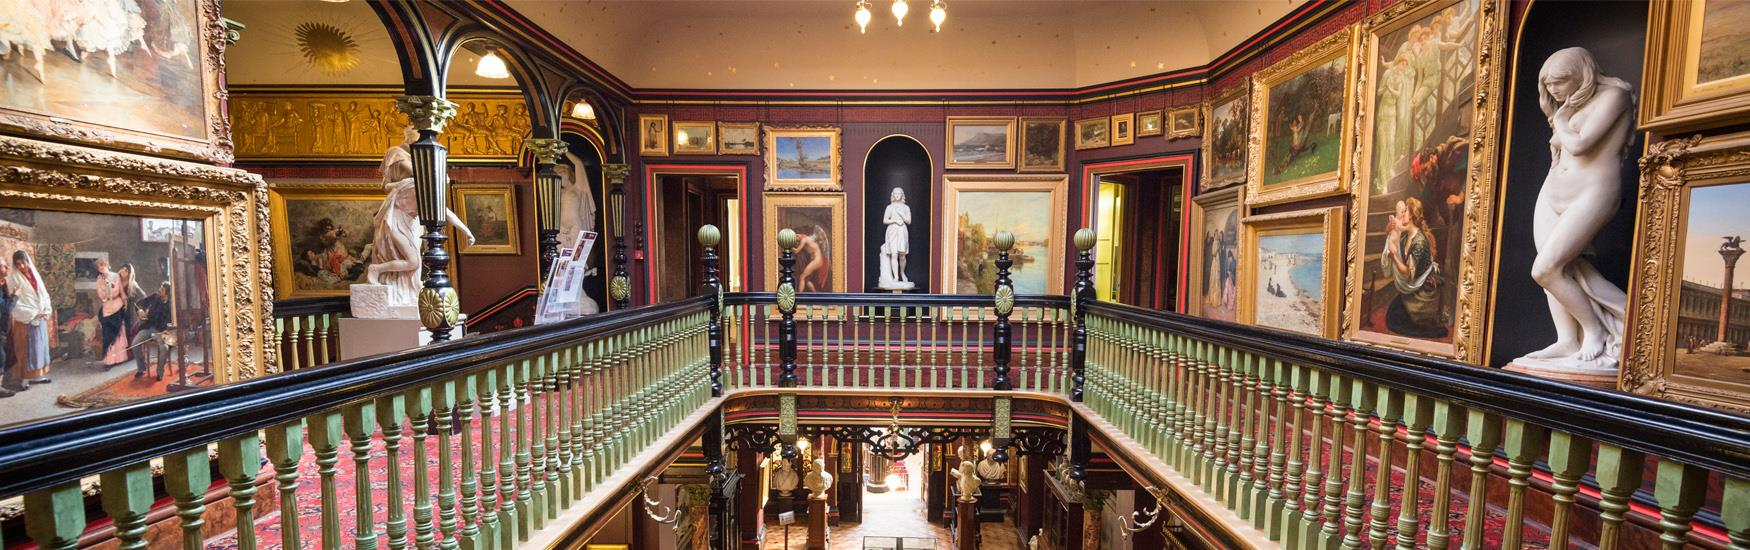 Visit the beautiful Russell-Cotes Art Gallery & Museum